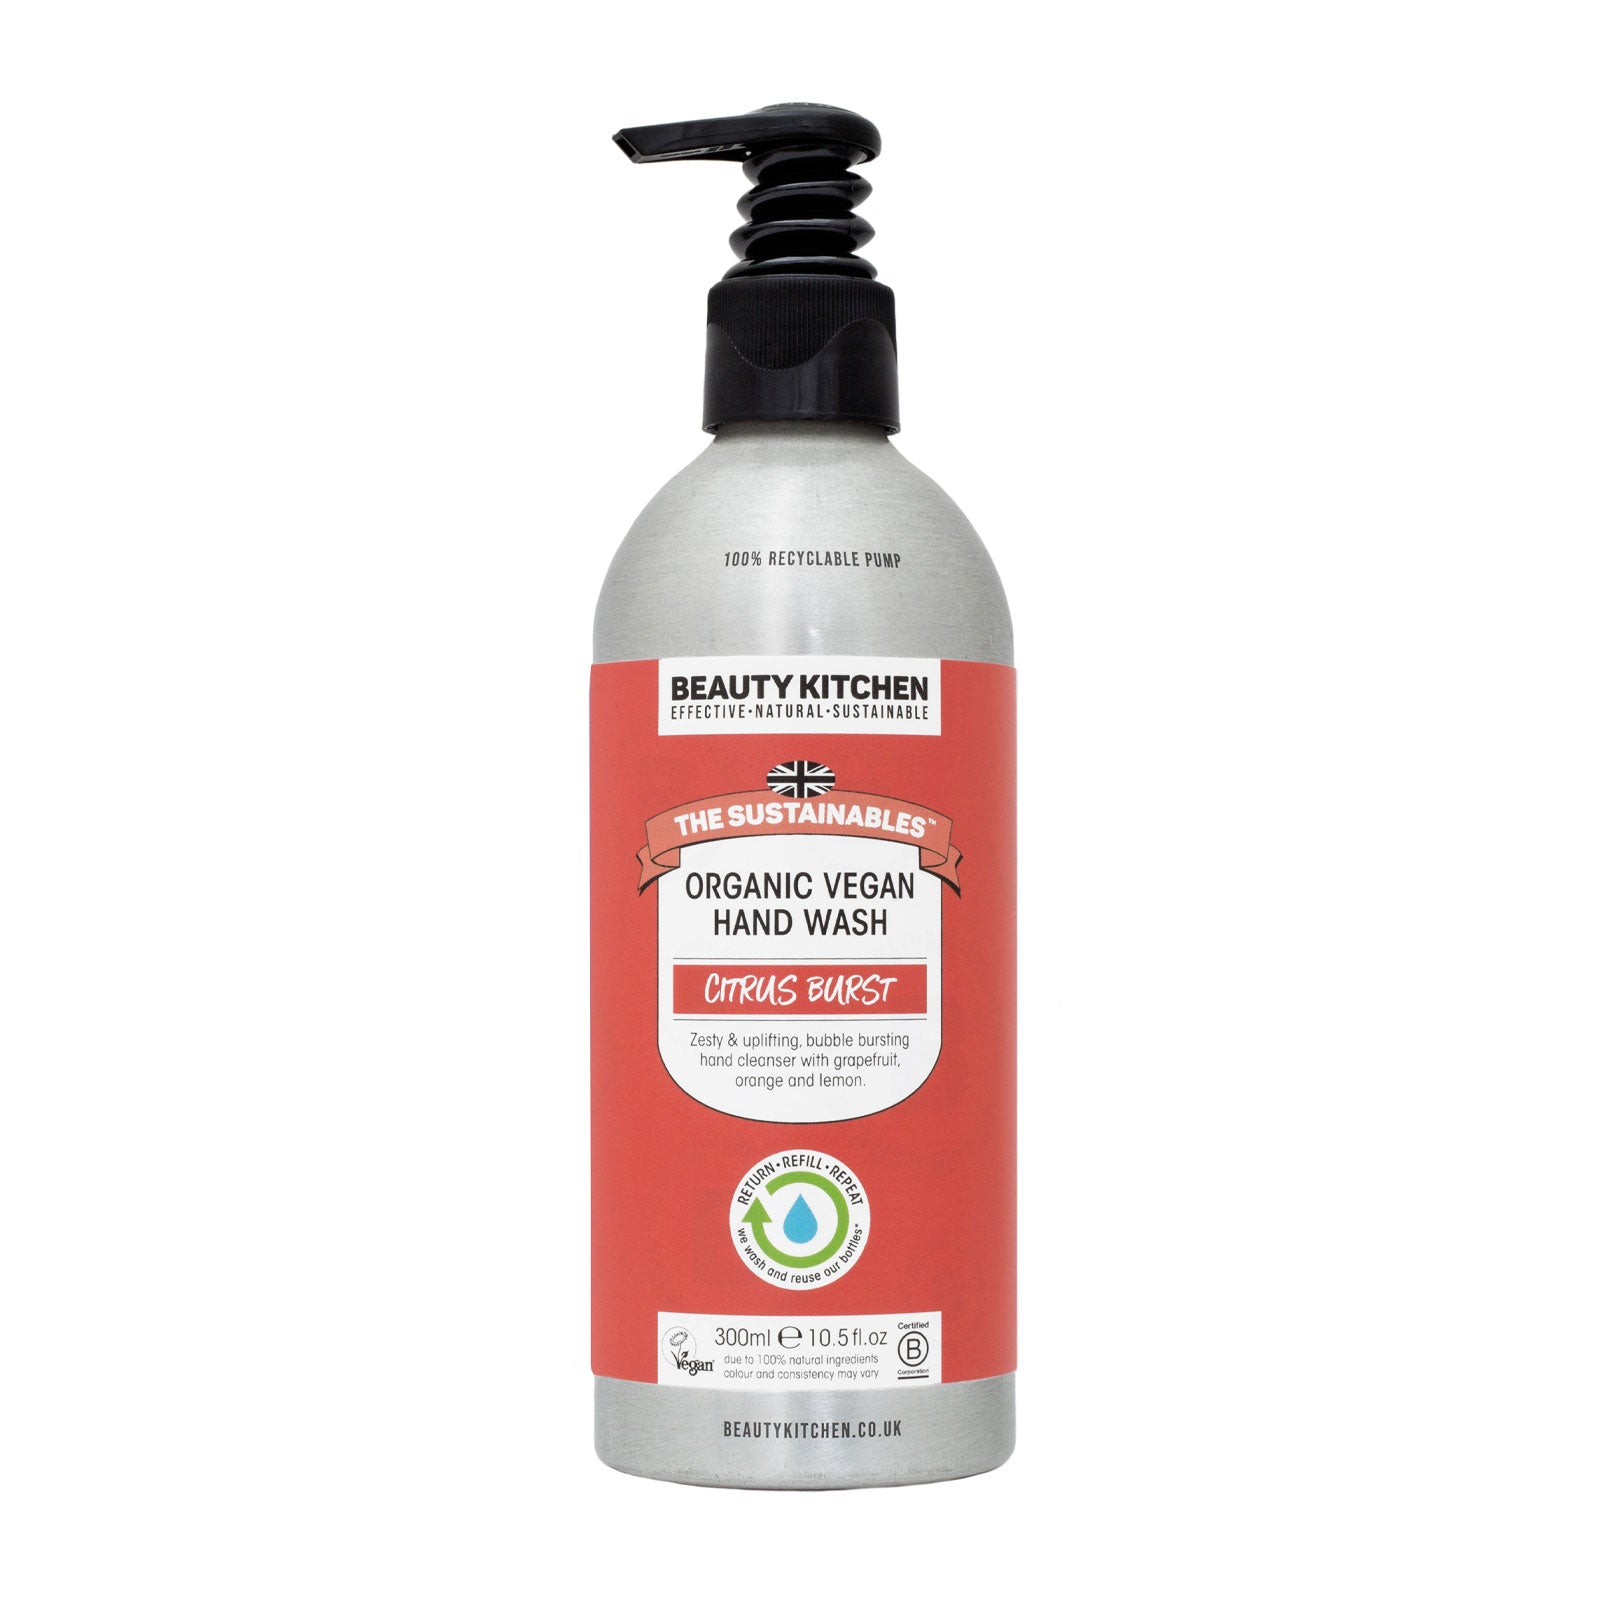 Beauty Kitchen The Sustainables Citrus Burst Organic Vegan Hand Wash 300ml